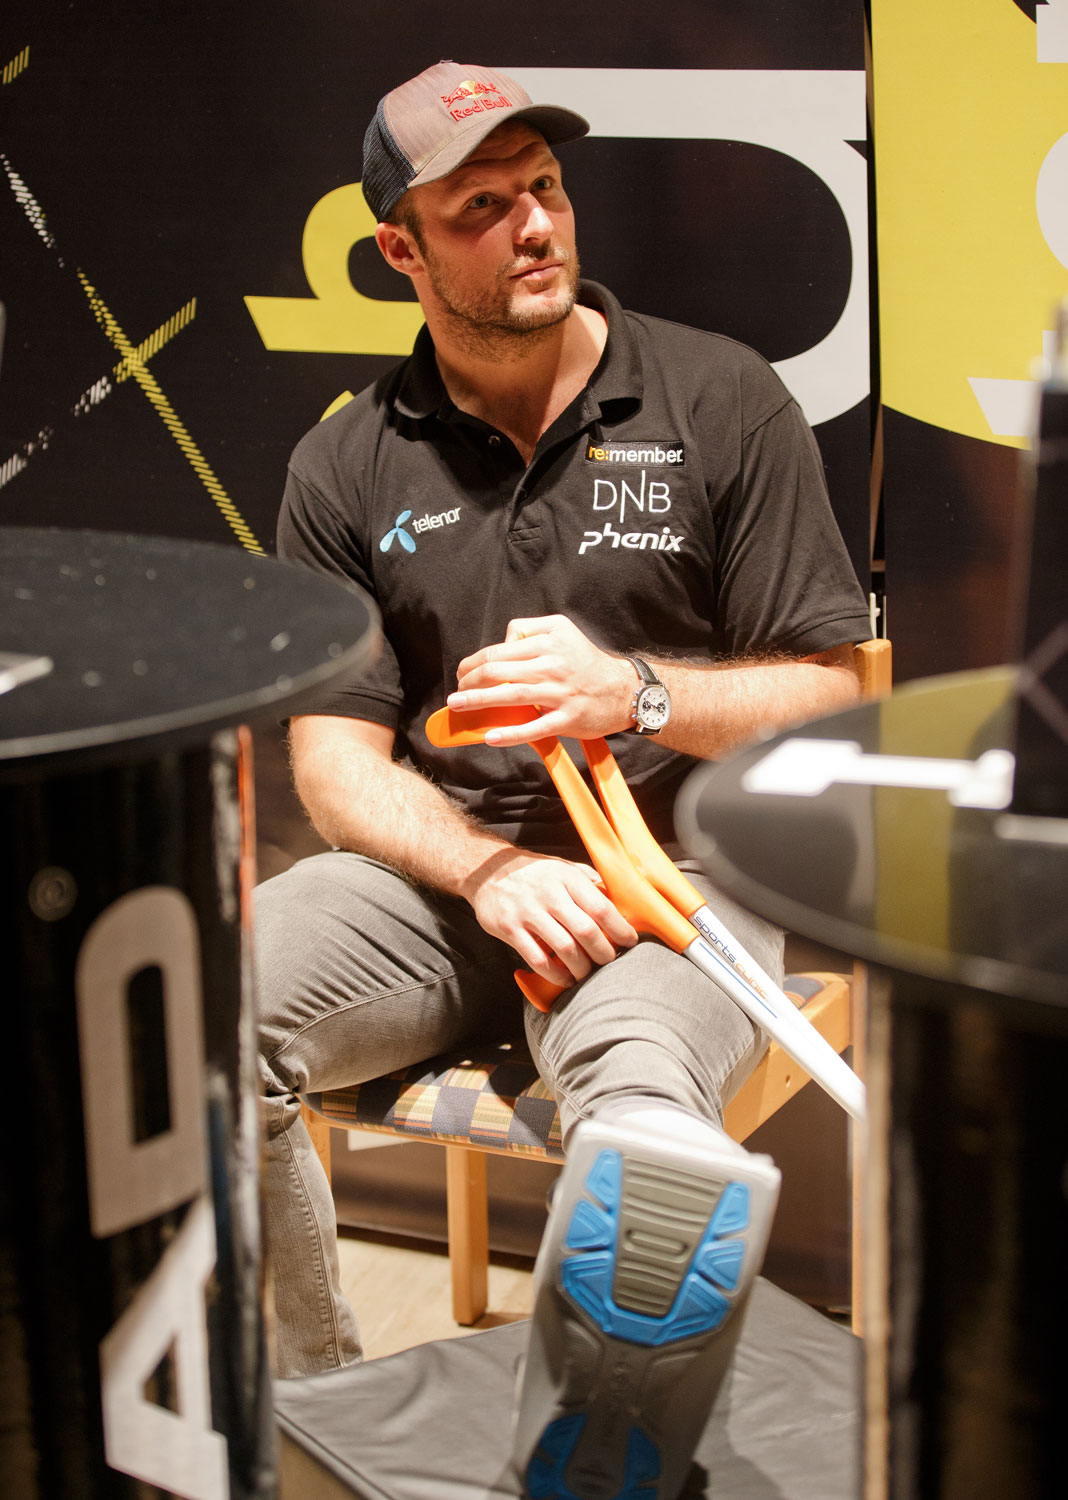 Aksel Lund Svindal elevates his torn Achilles tendon at a media event in October.